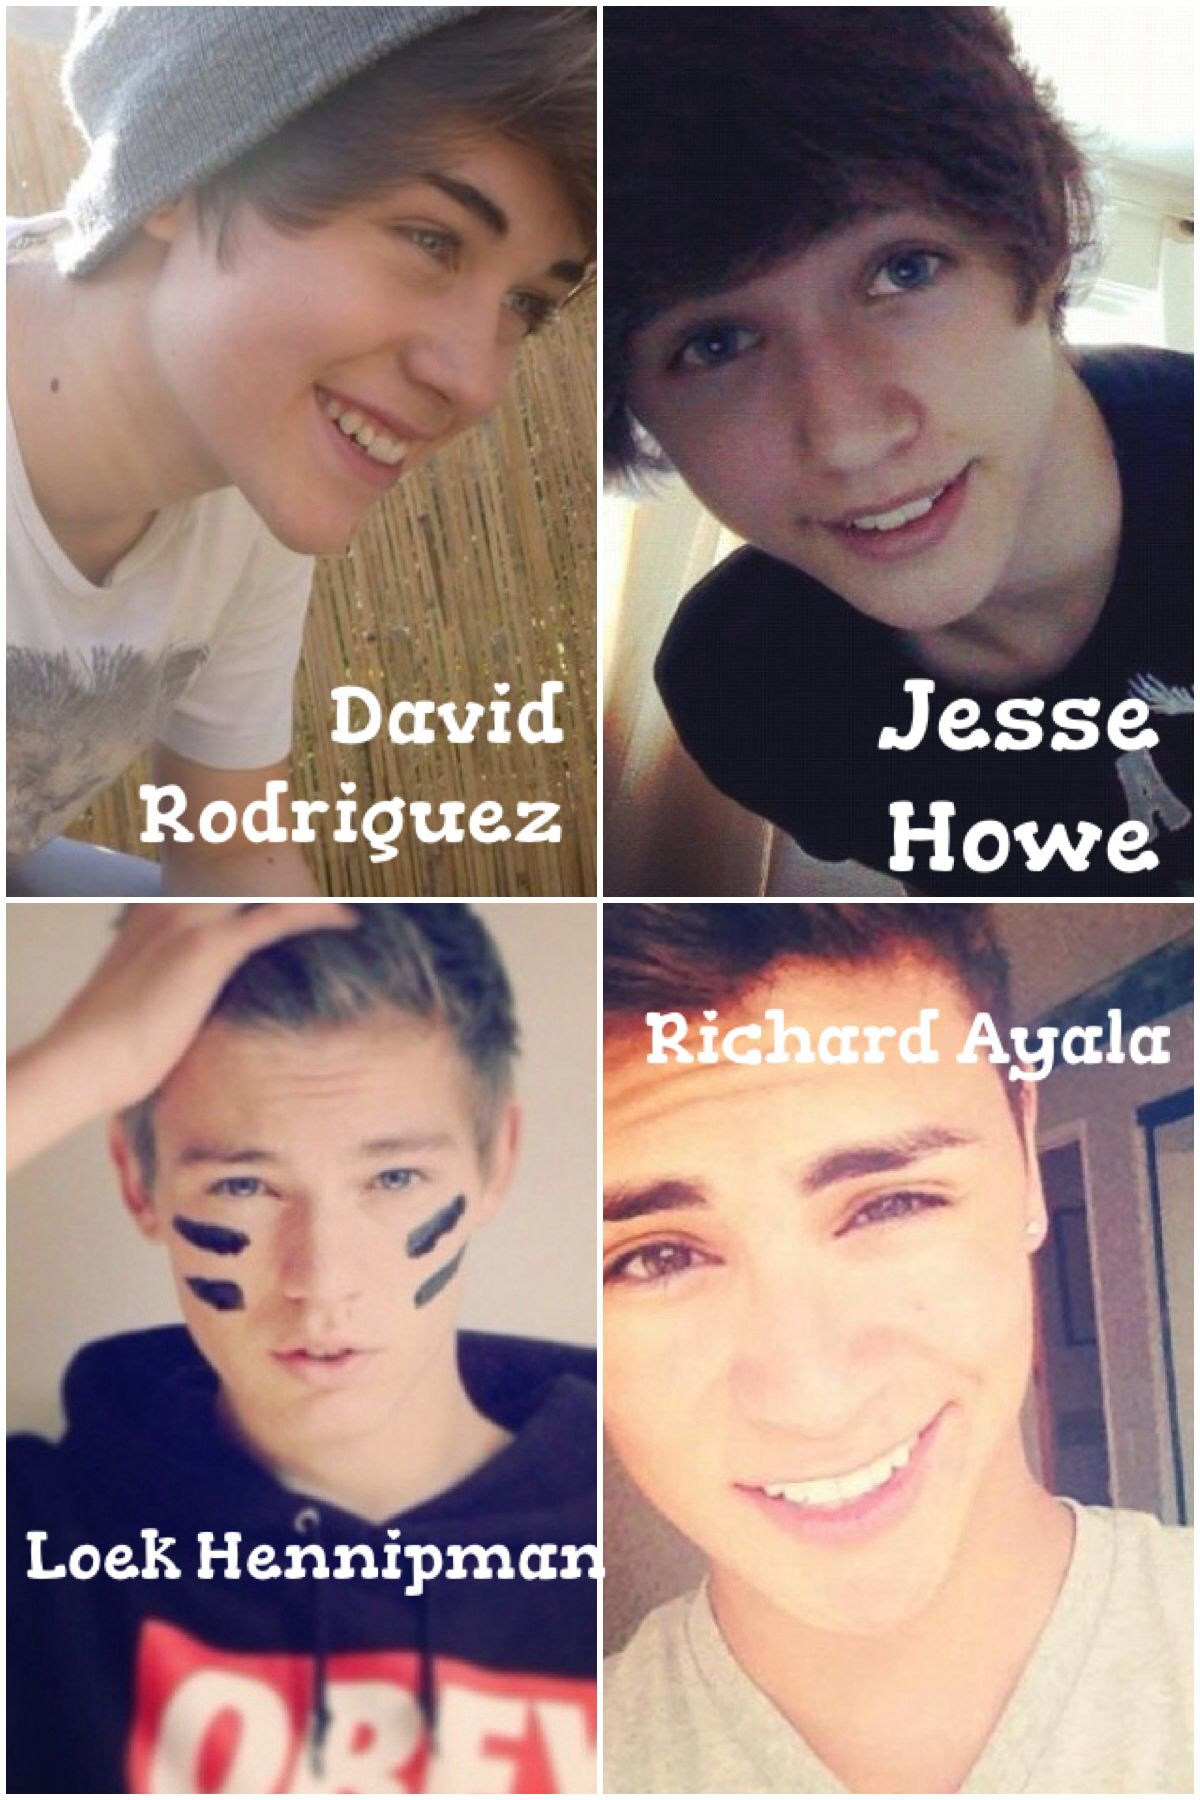 I ONLY FOUND FOUR OTHERS FROM PINTEREST BUT HEY I FOUND THEM!! It's David Rodriguez, Jesse Howe, Richard Agala, and Loek Hennipman!! :D